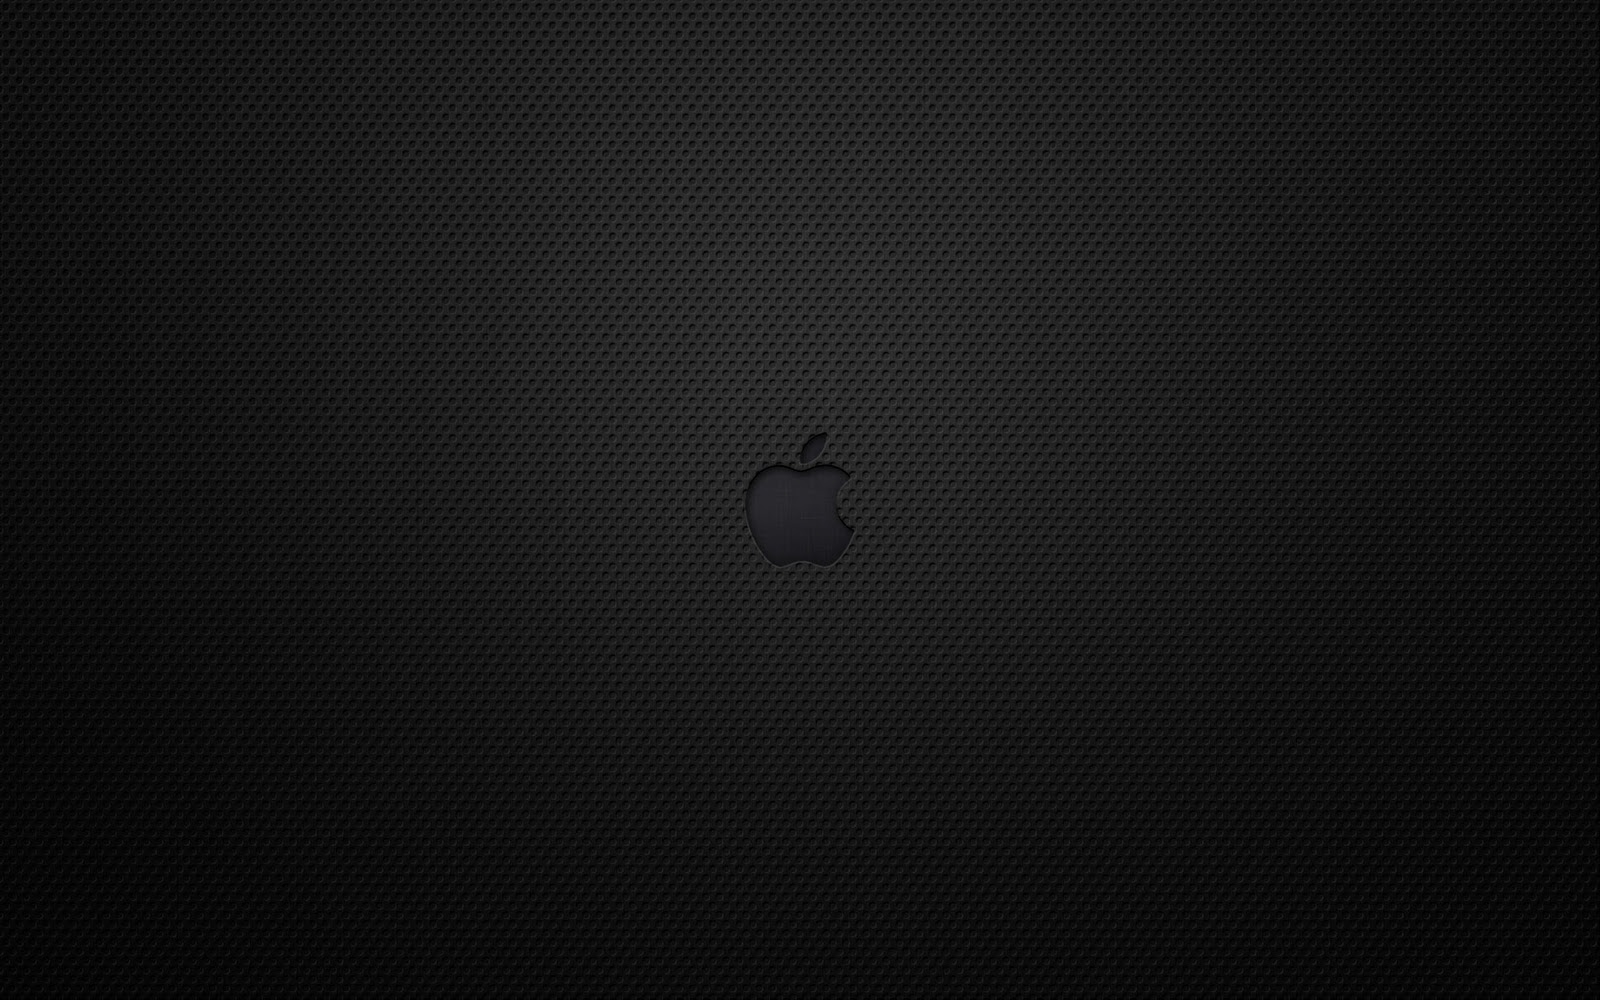 http://1.bp.blogspot.com/_oalwC3a4OAg/TGvAlDvvuRI/AAAAAAAABd0/9X_tmQaVlf8/s1600/Apple_Black_Template_design_background_wallpaper.jpg